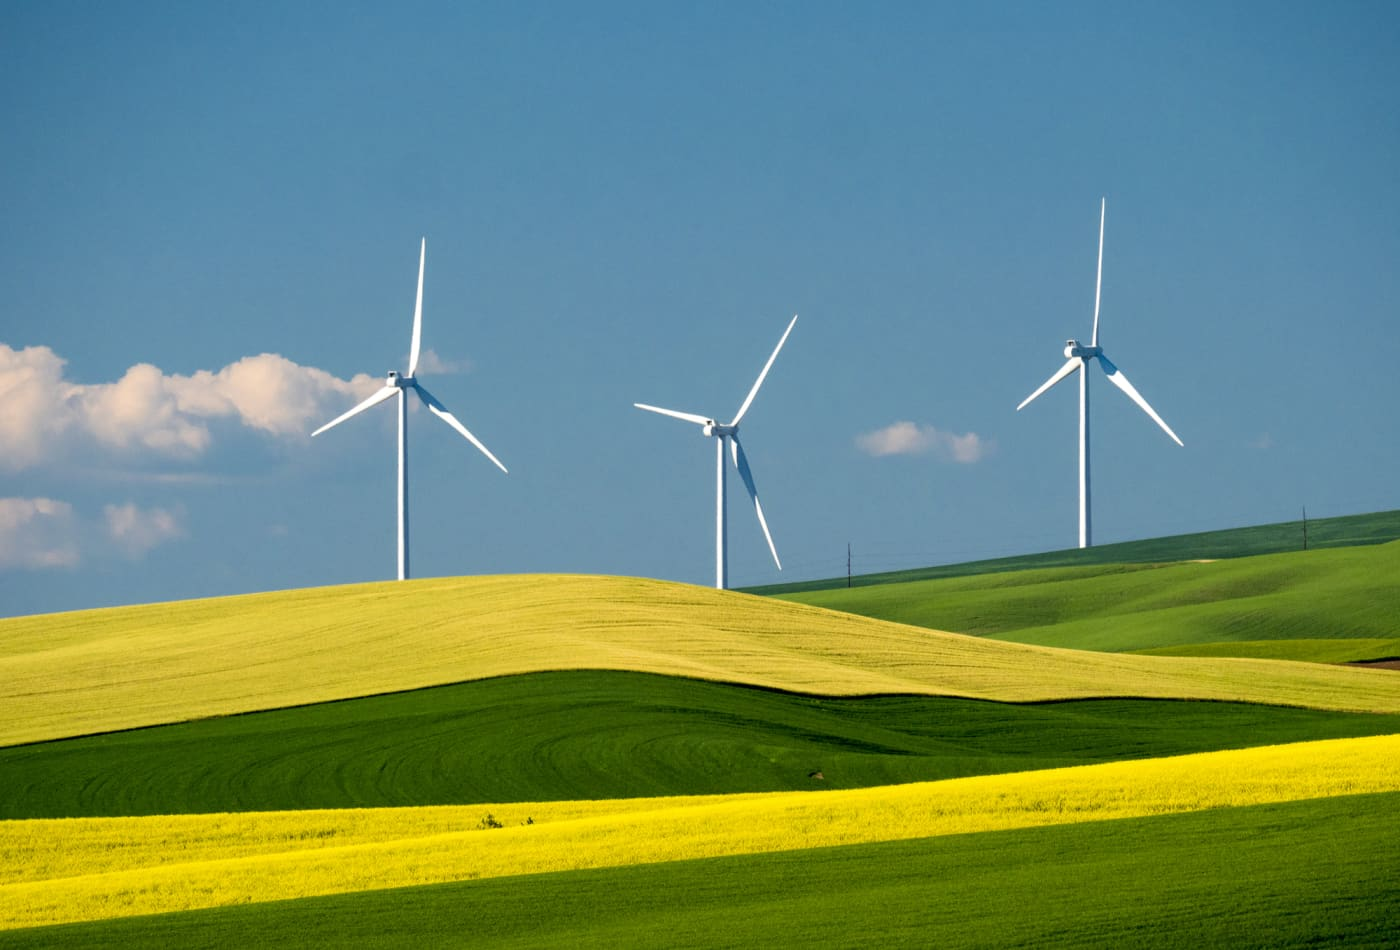 Wind has become the 'most-used' source of renewable electricity generation in the US